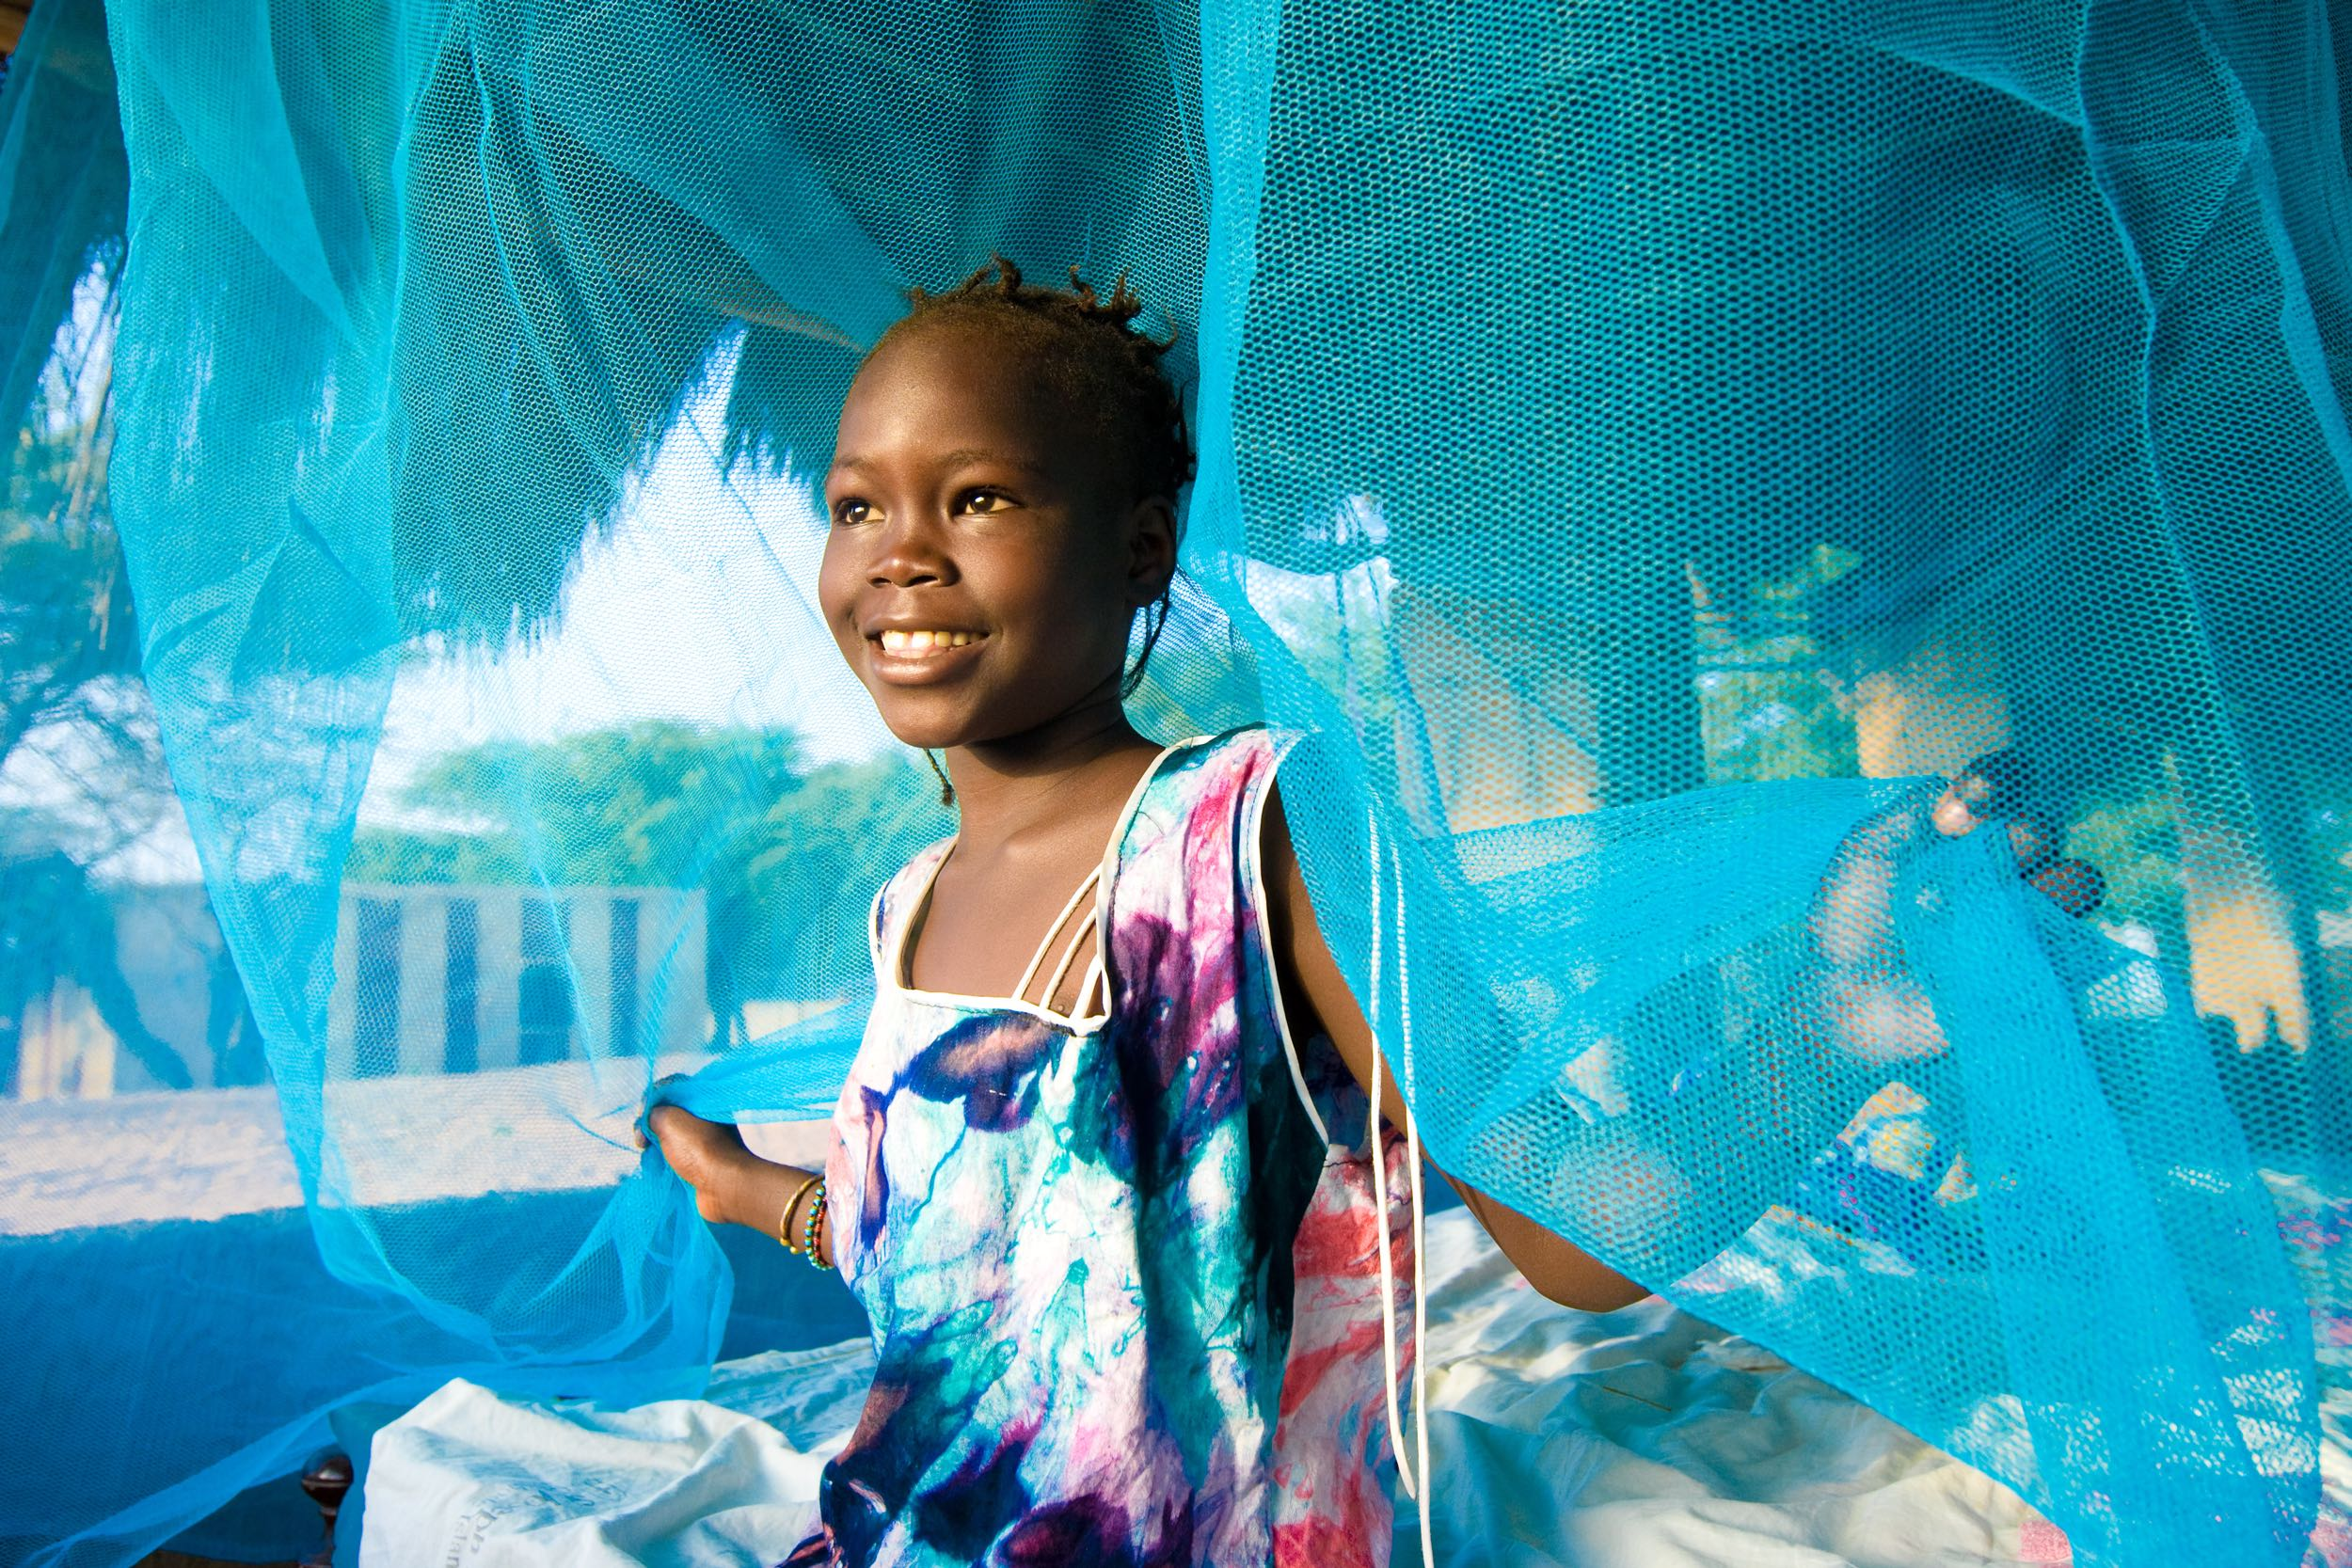 girl lifting up blue netting curtains